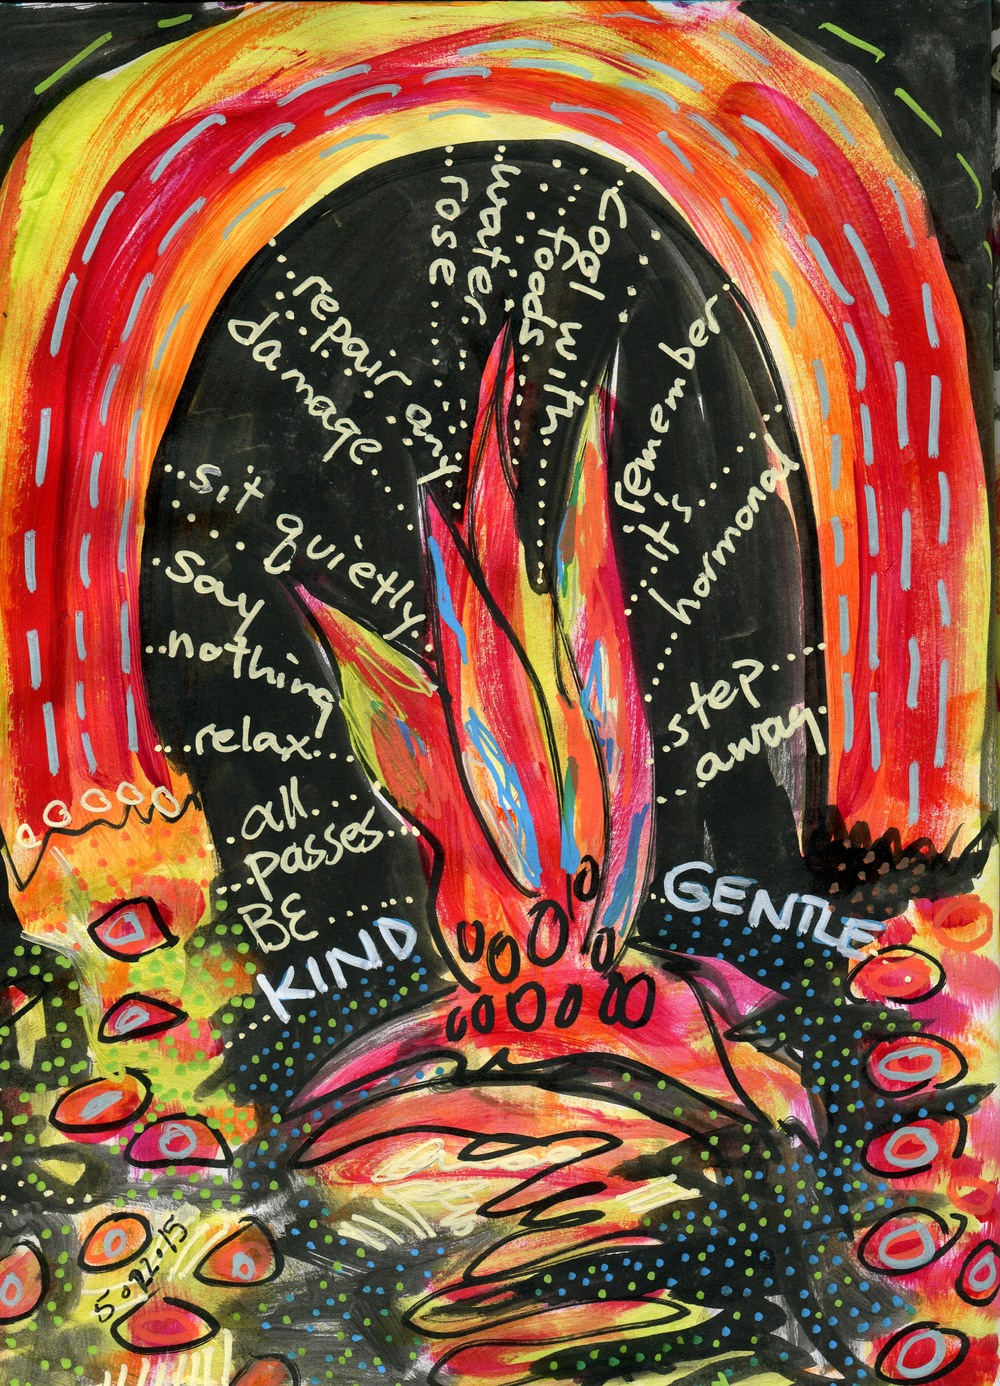 Hot Flash Temple, art journal image May 2015